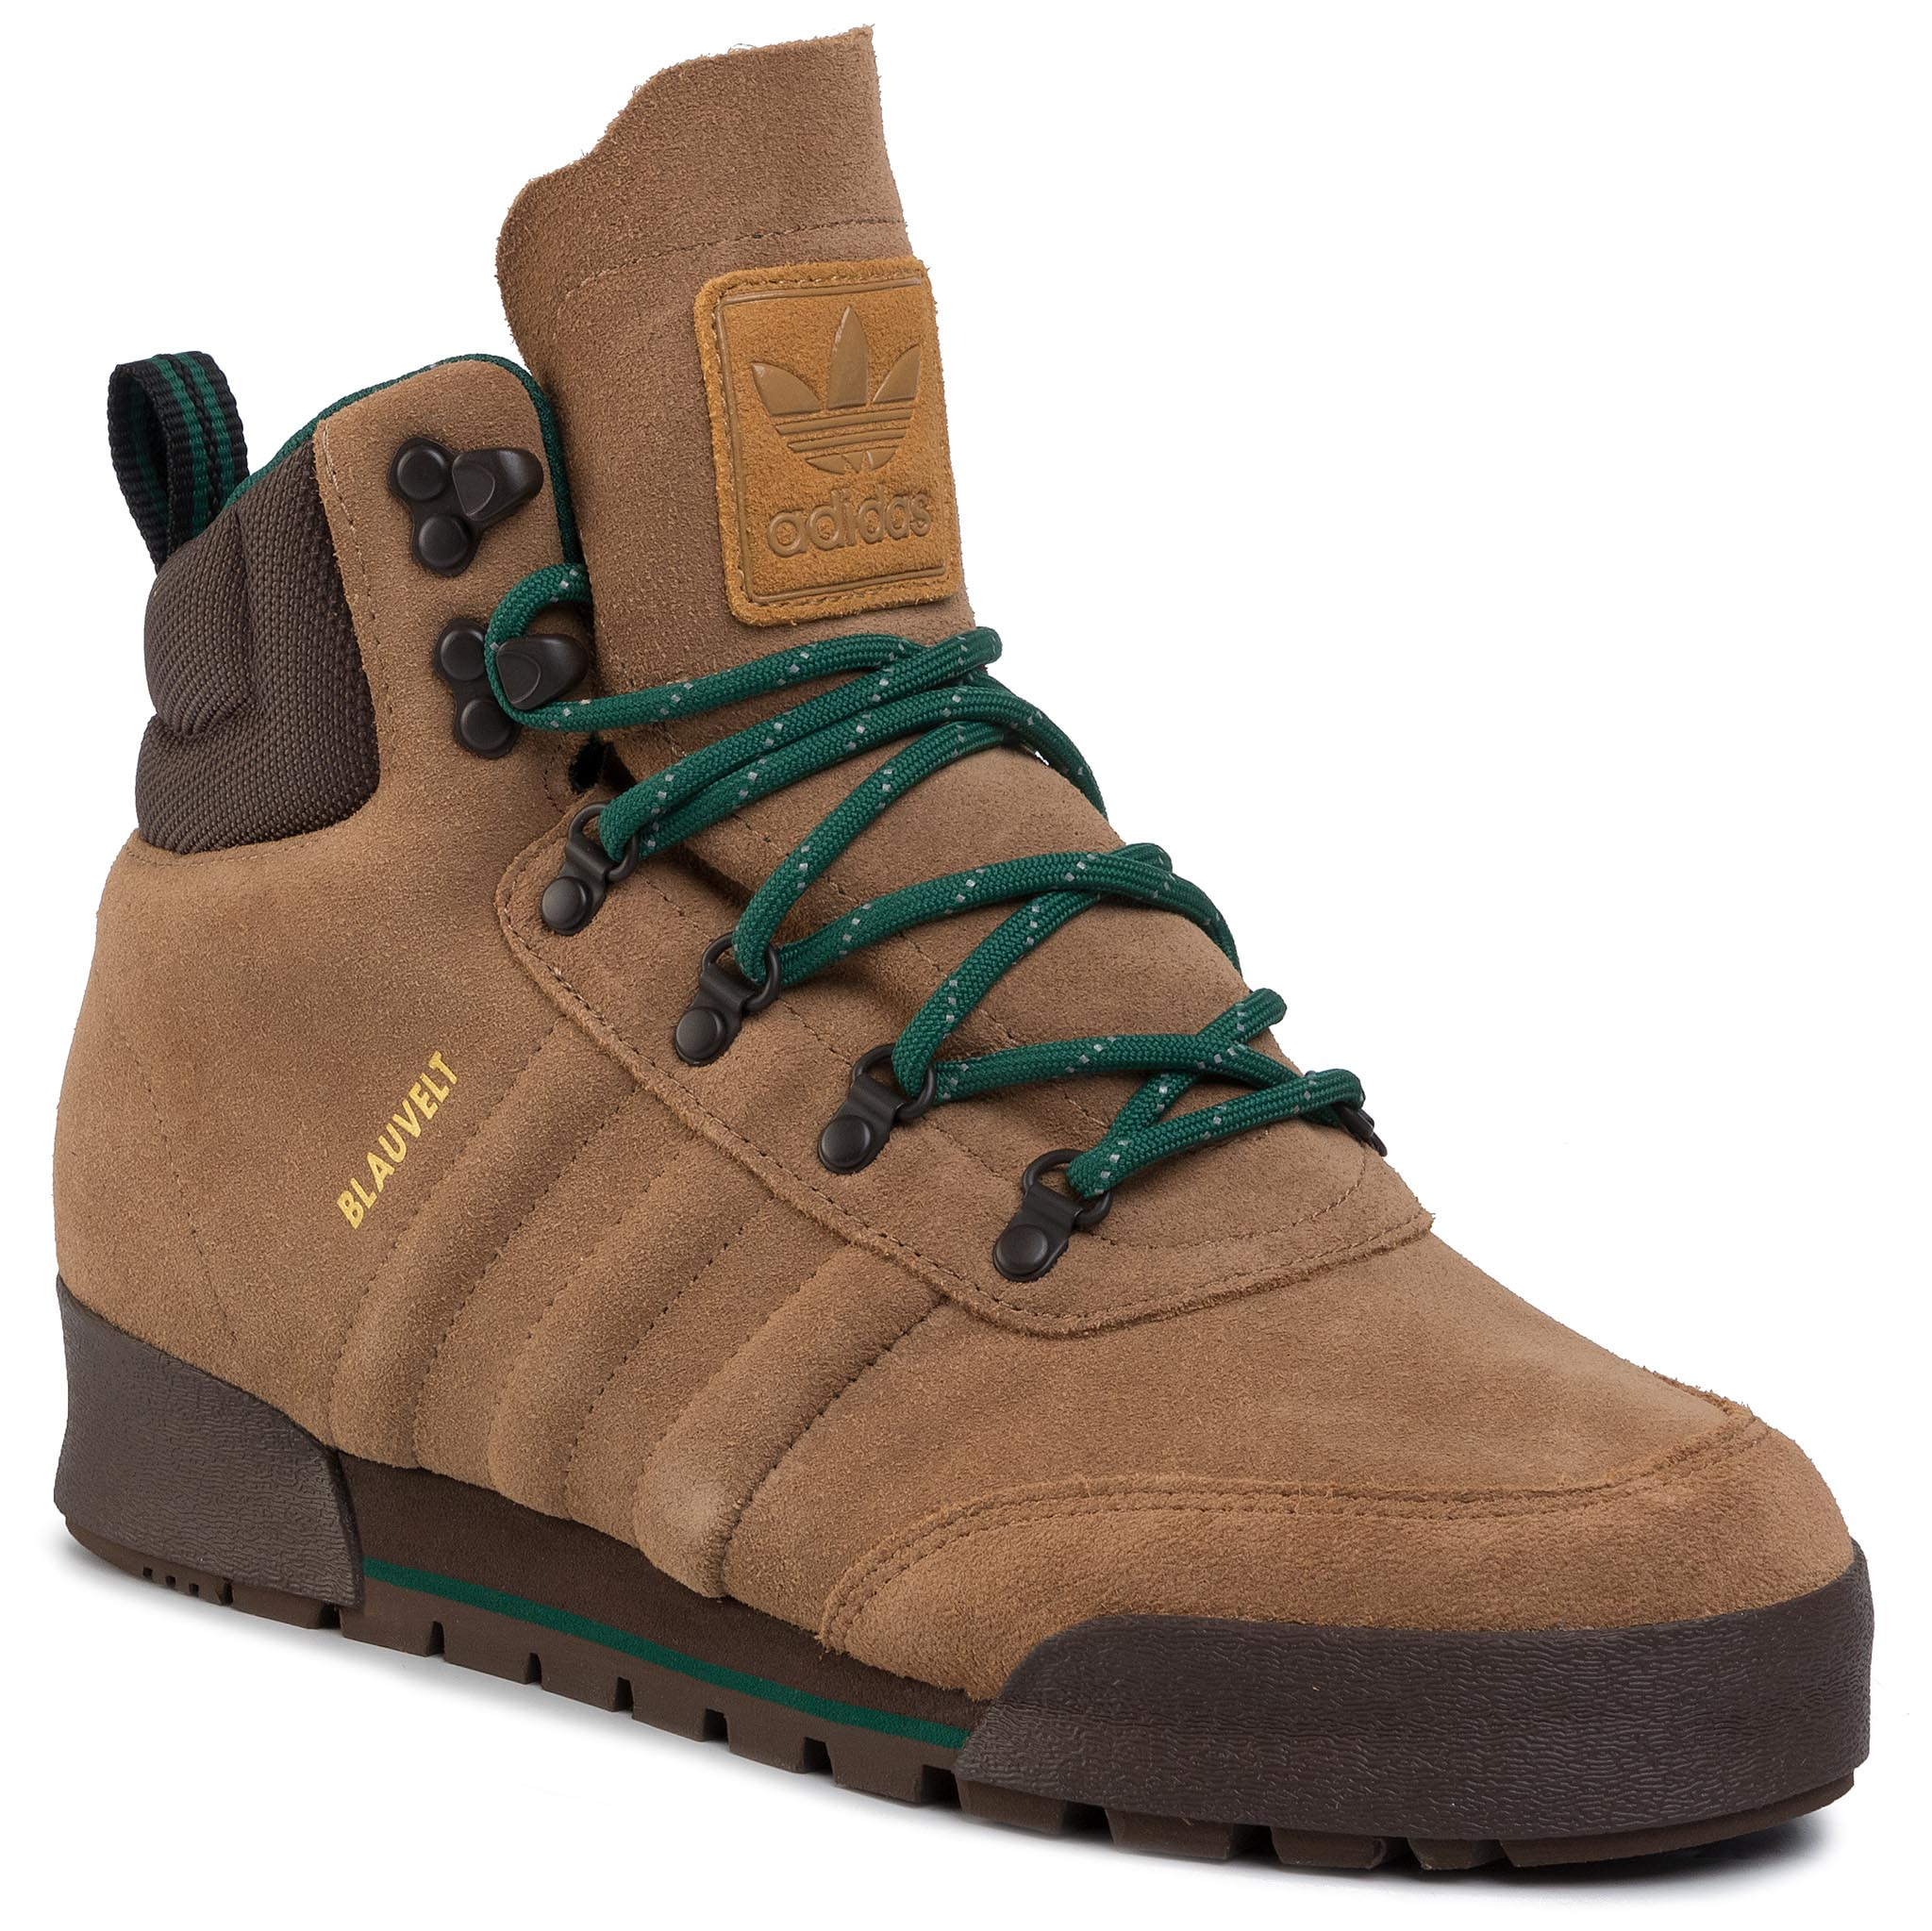 Batai adidas - Jake Boot 2.0 EE6206 Rawdes/Brown/Cgreen